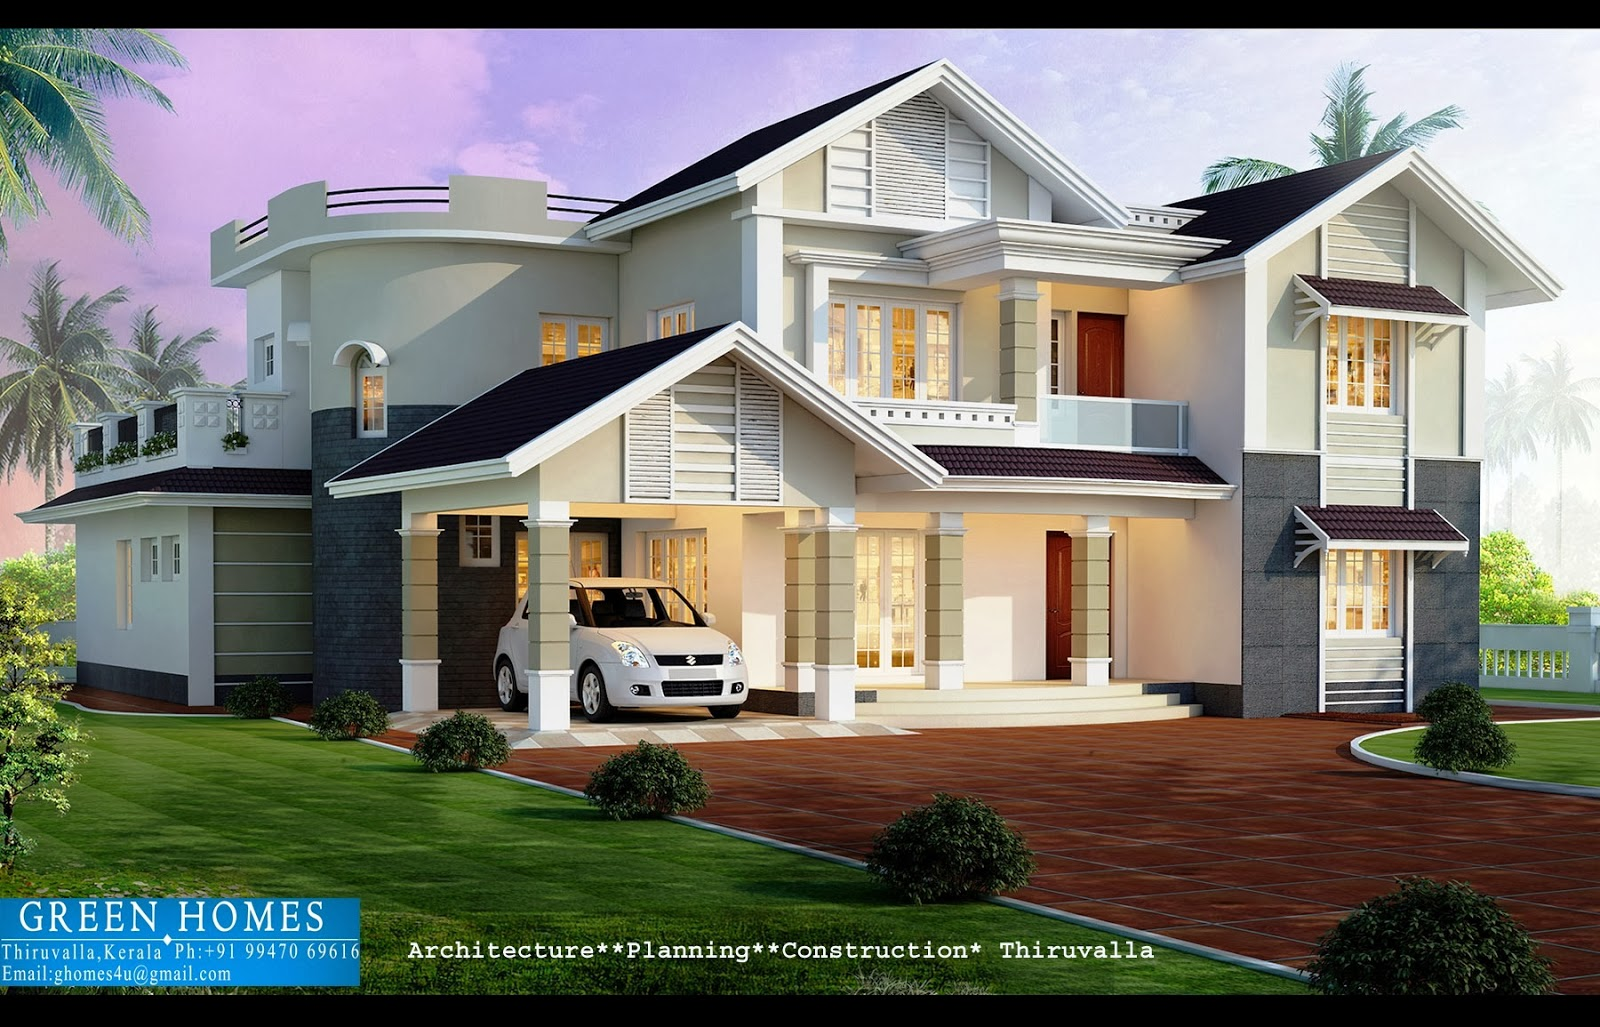 Green homes beautiful home design for Green home blueprints